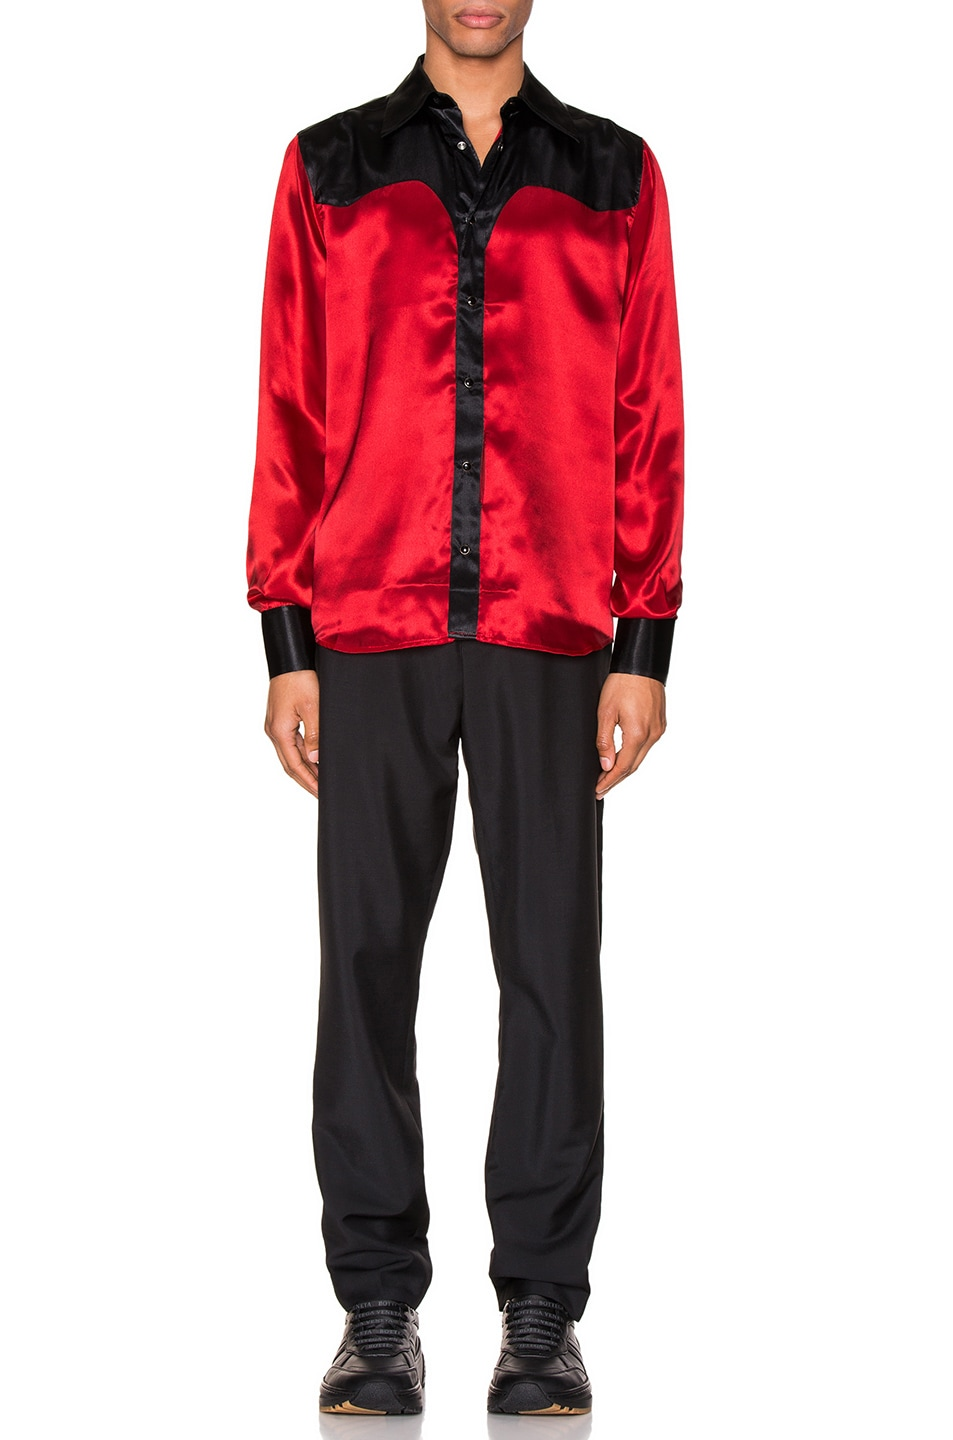 Image 4 of SSS World Corp Western Shirt in Black & Red